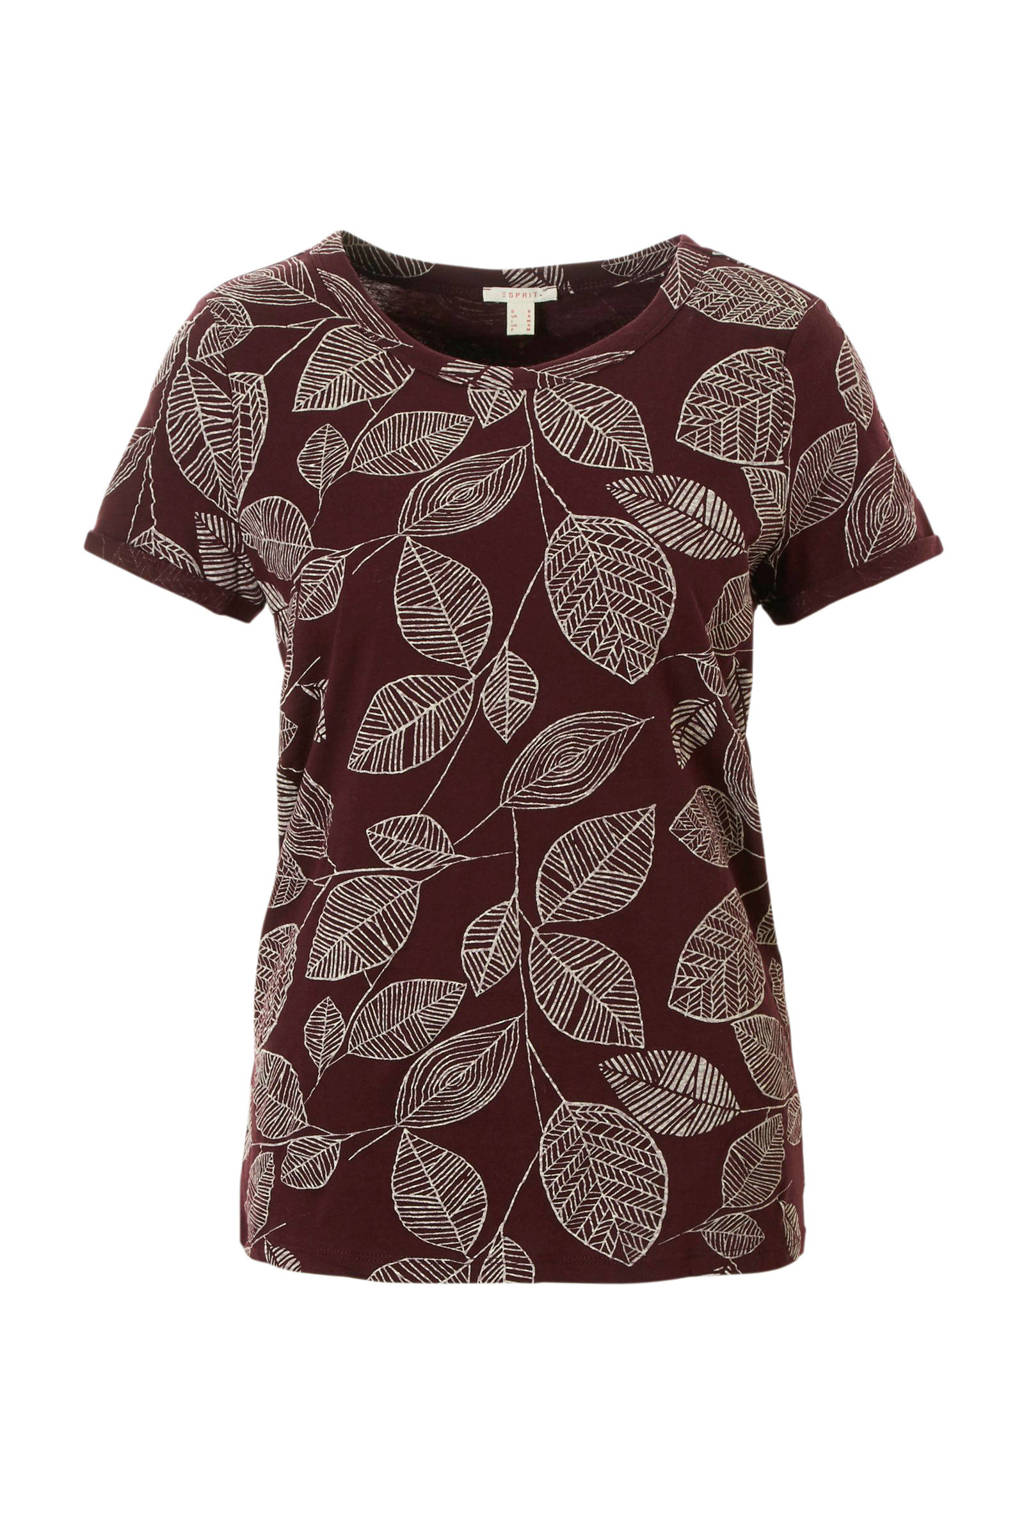 ESPRIT Women Casual T-shirt met bladprint, Rood/wit